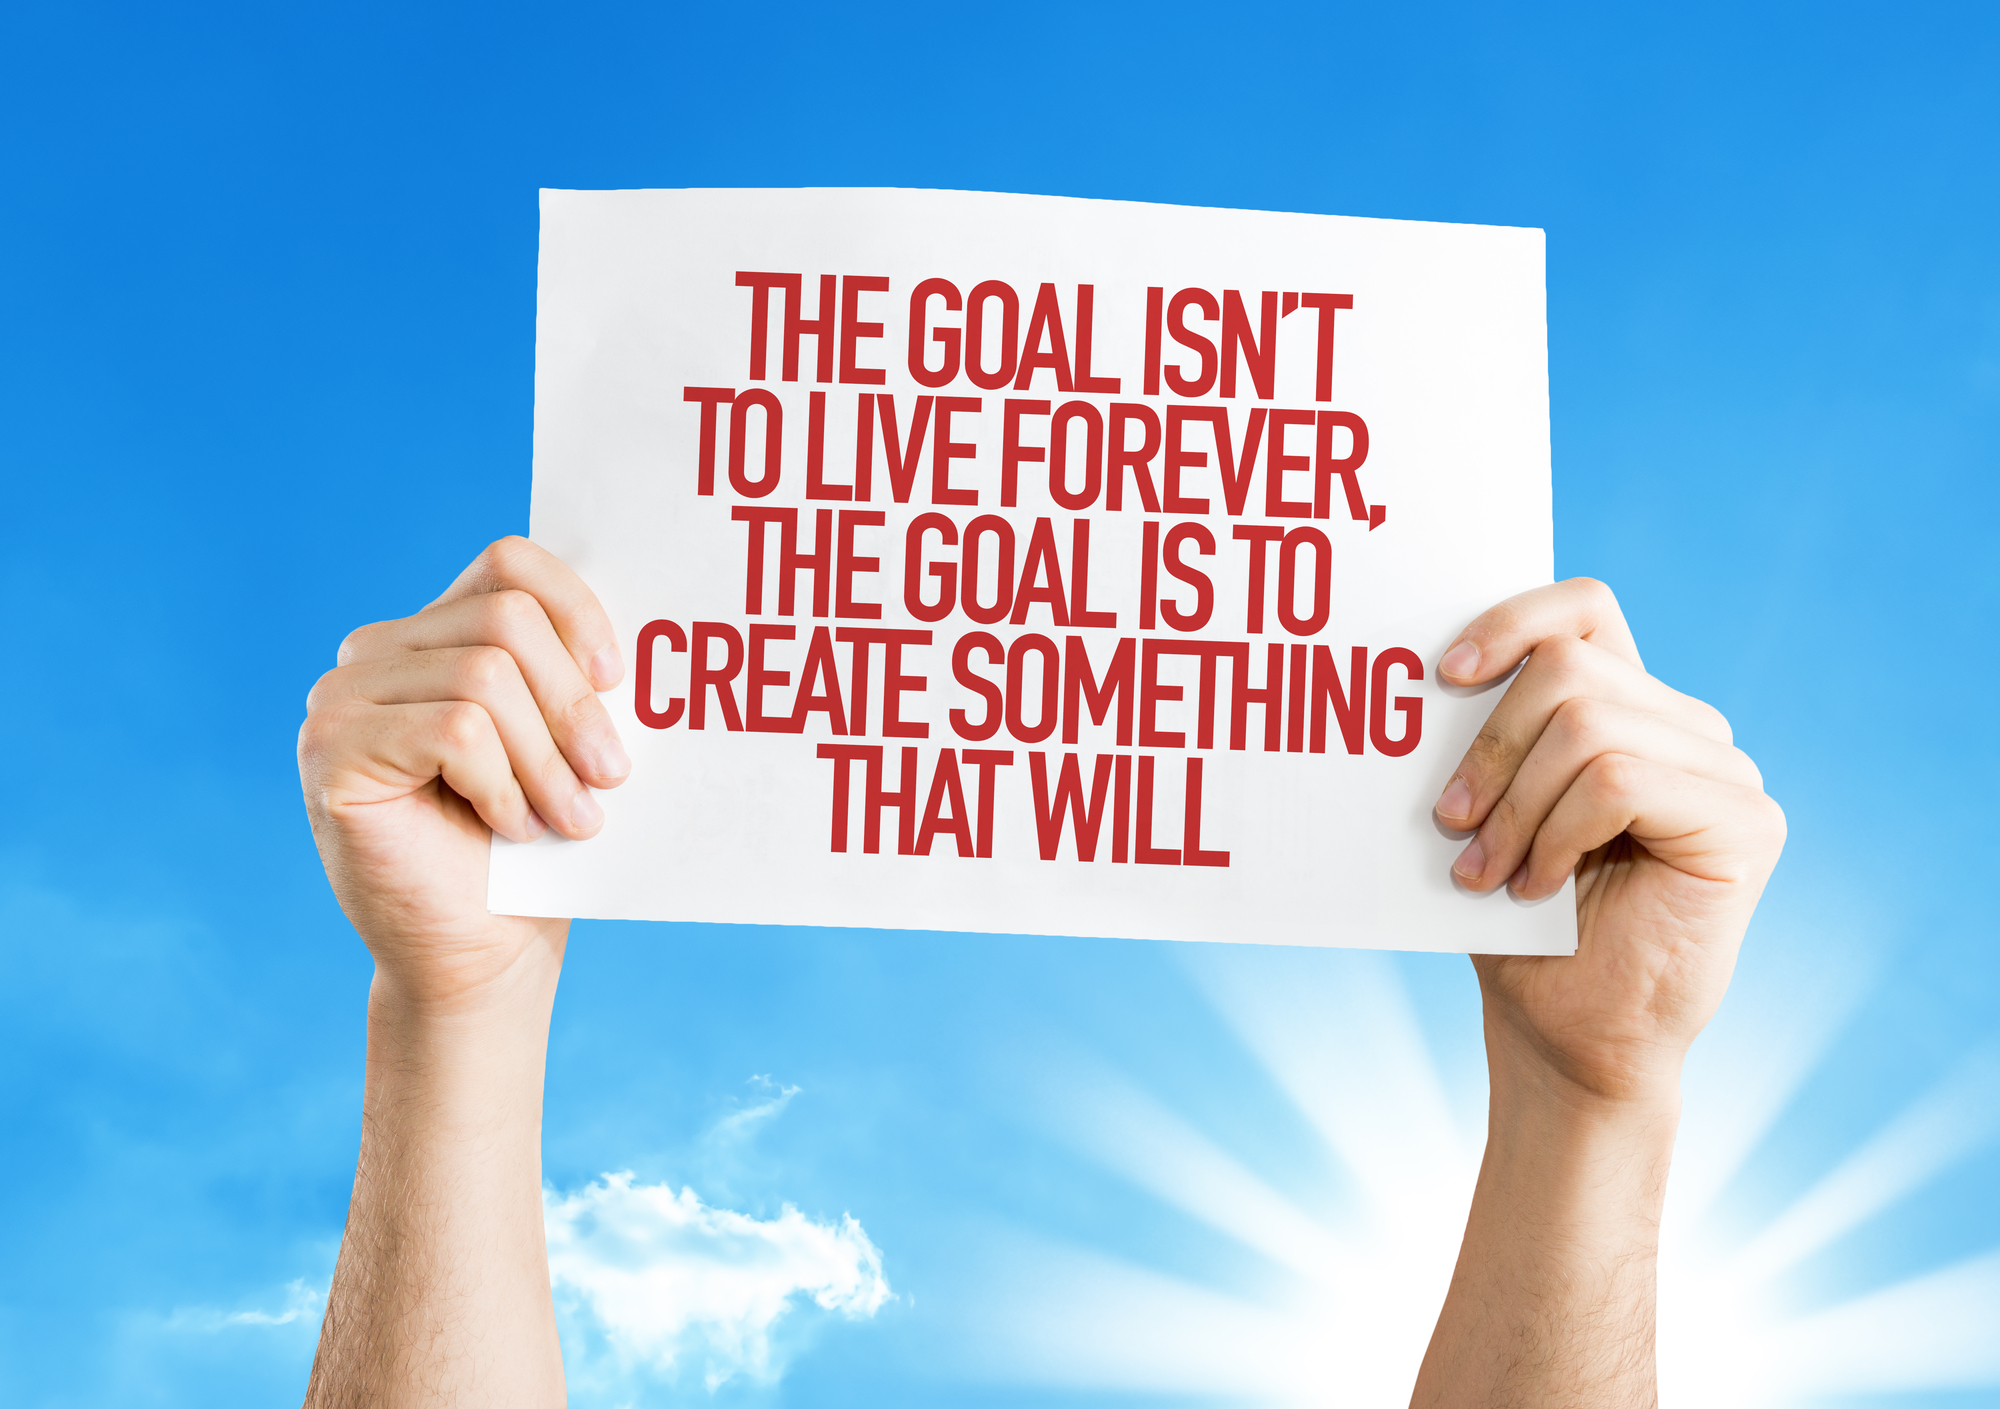 the goal isnt to live forever